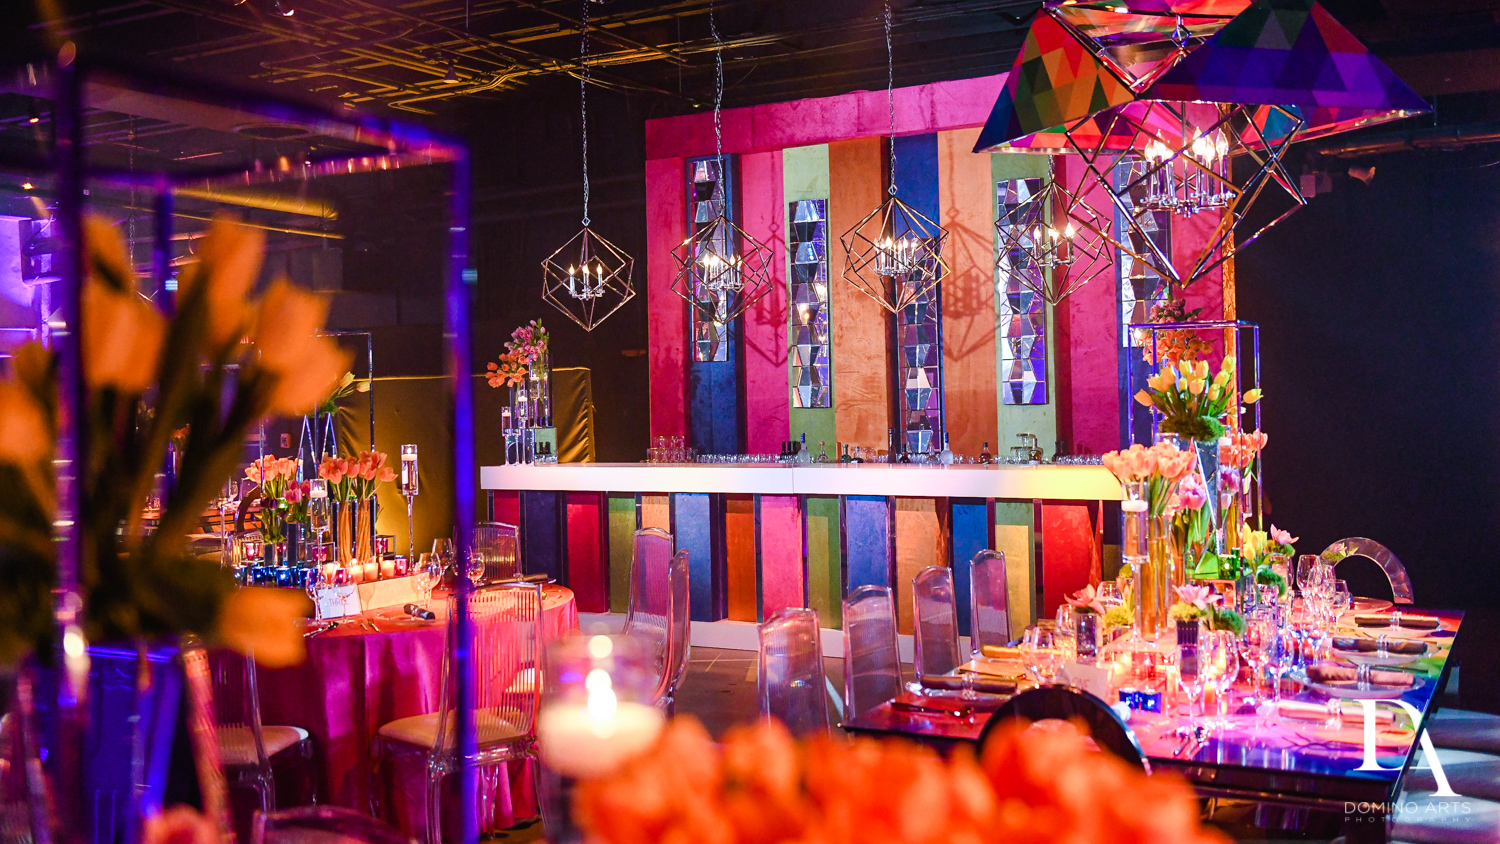 custom bar at Colorful B'Not Mitzvah at Gallery of Amazing Things by Domino Arts Photography